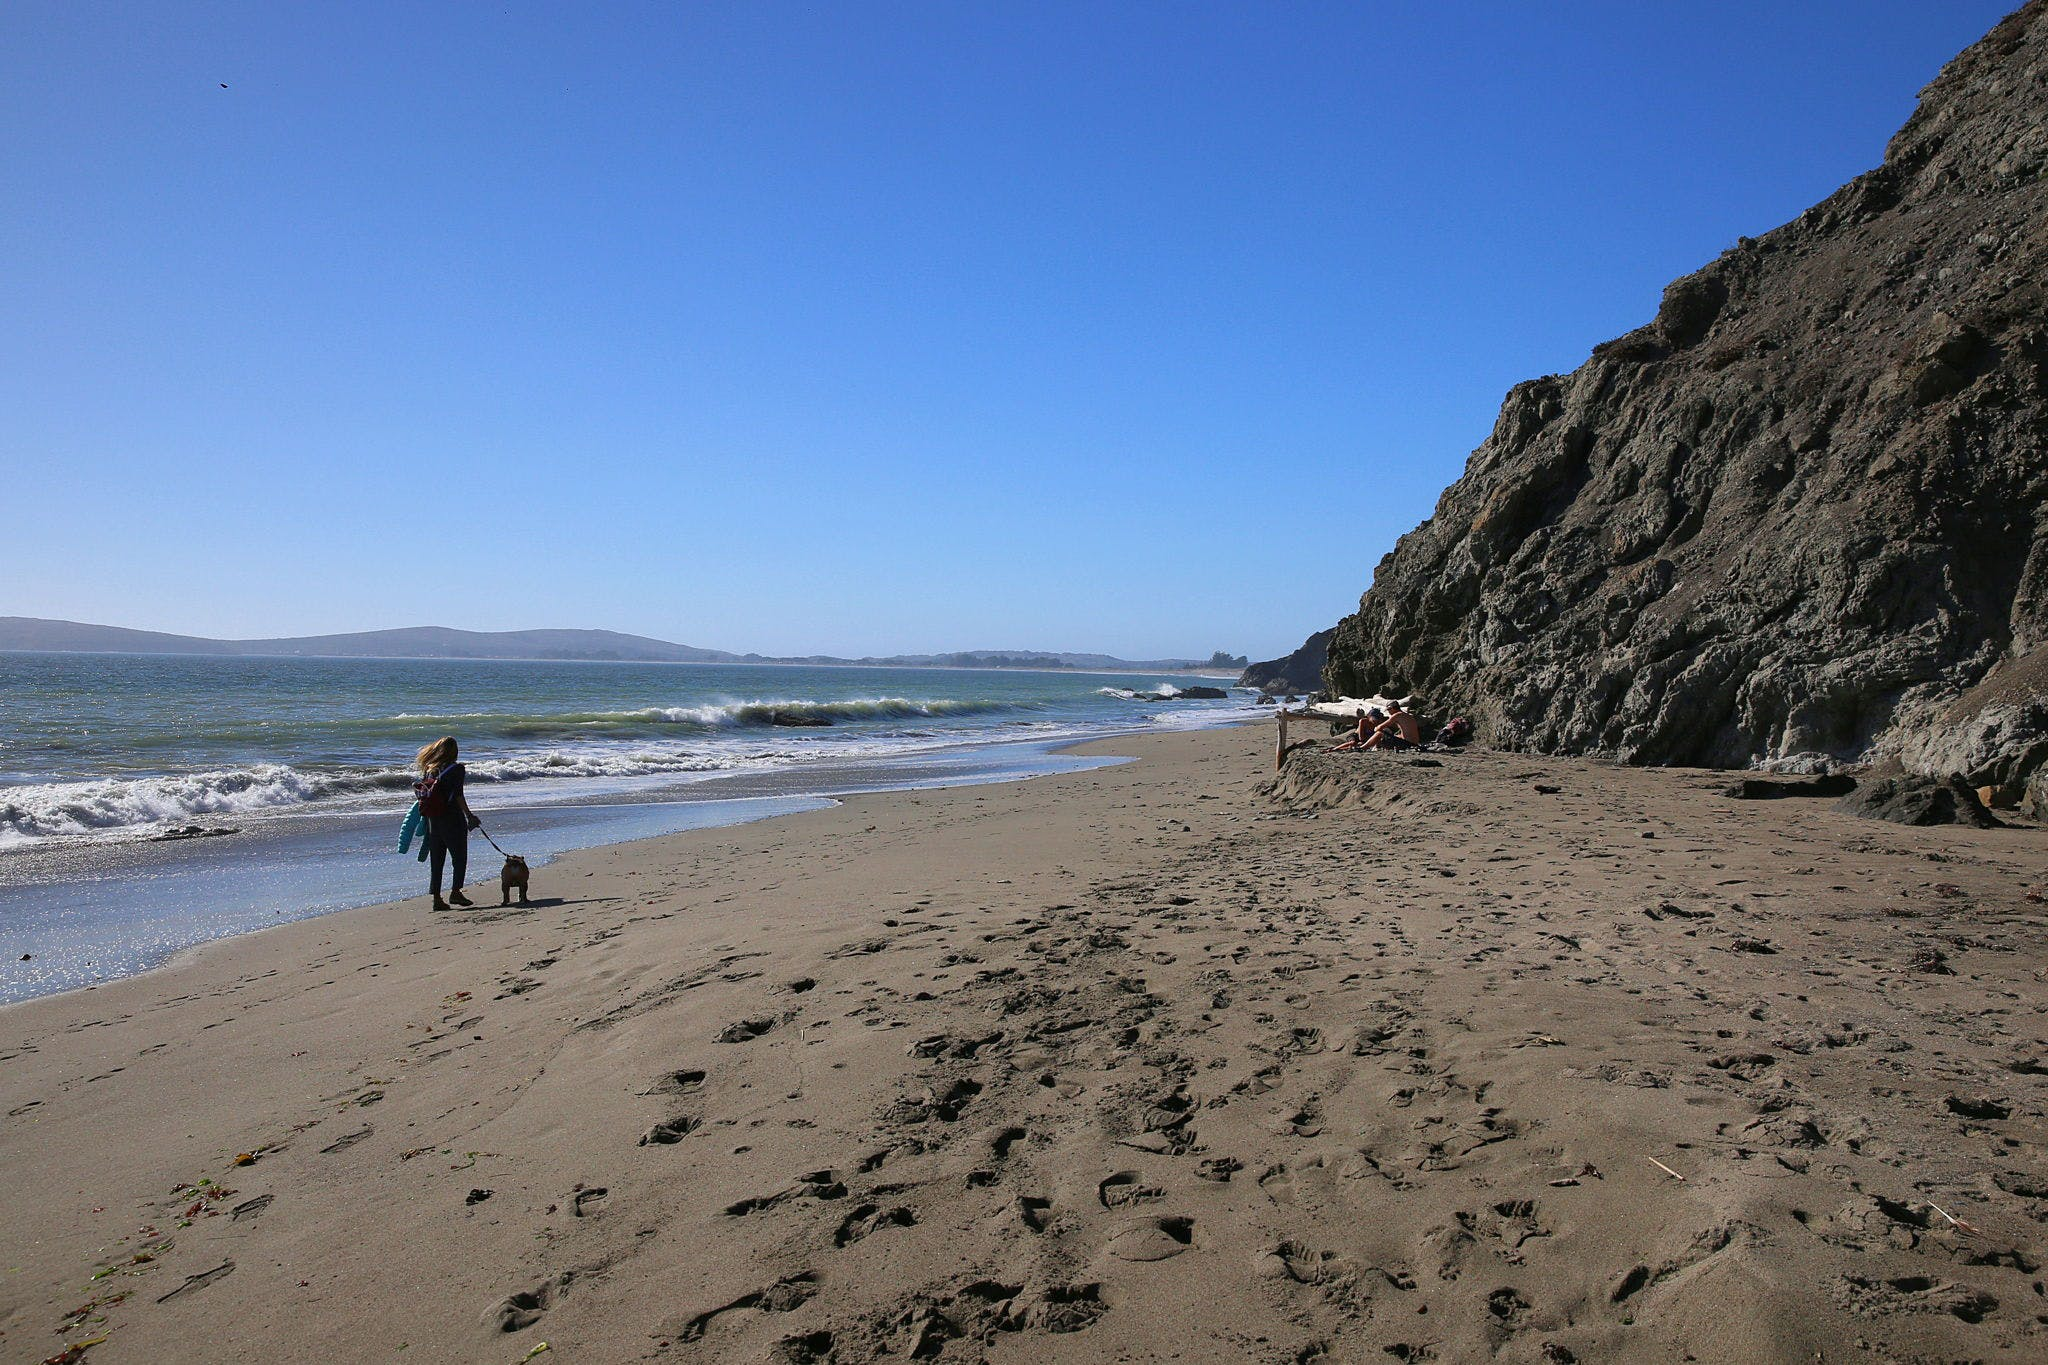 Hike in to Pinnacle Gulch Beach in Sonoma County